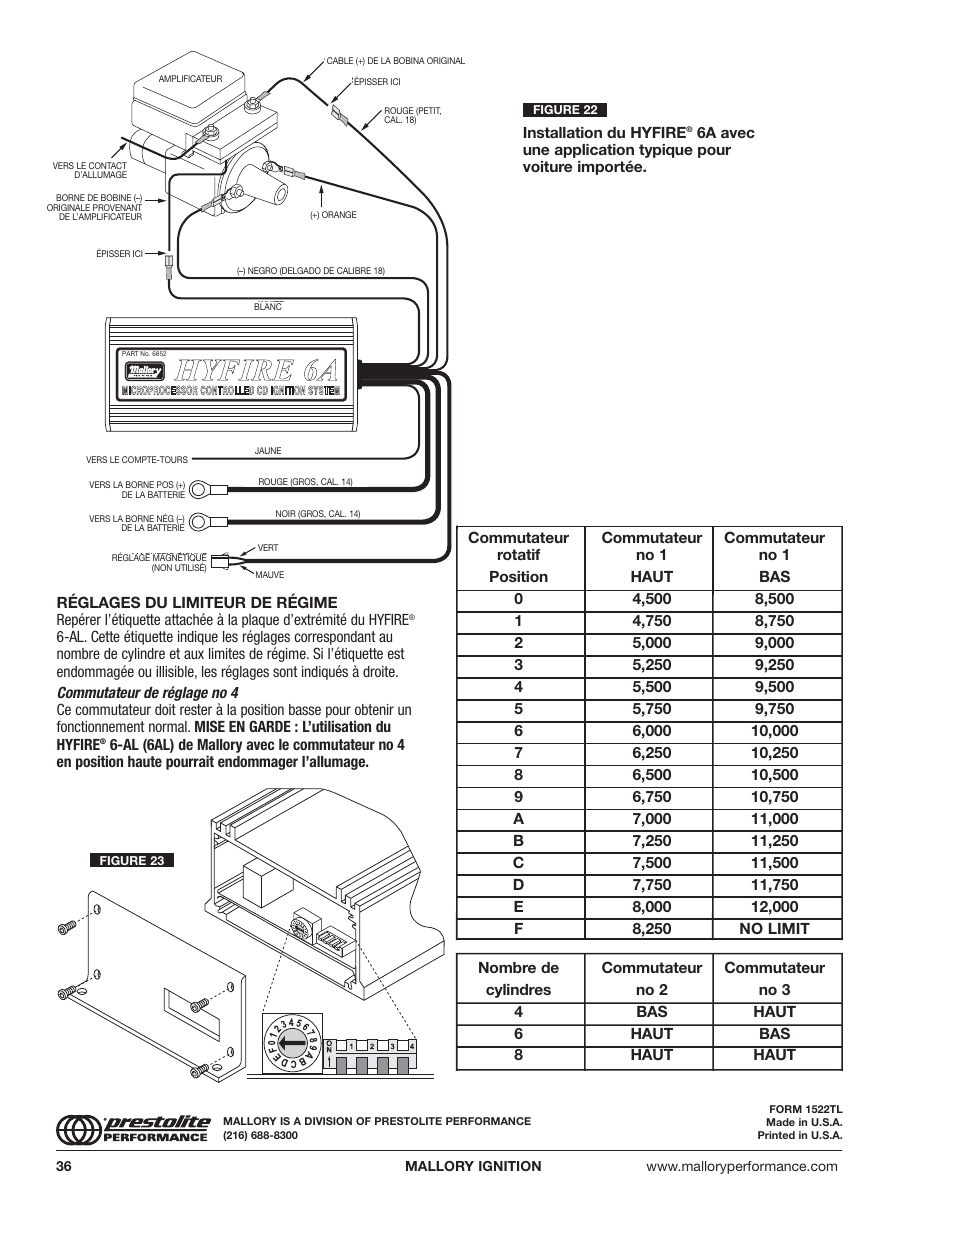 mallory ignition mallory hyfire 6a and 6al series electronic ignition controls 6852m_6853m page36?resize\\=665%2C861 mallory high fire ignition wiring diagrams mallory dist wiring mallory 6al wiring diagram at mifinder.co